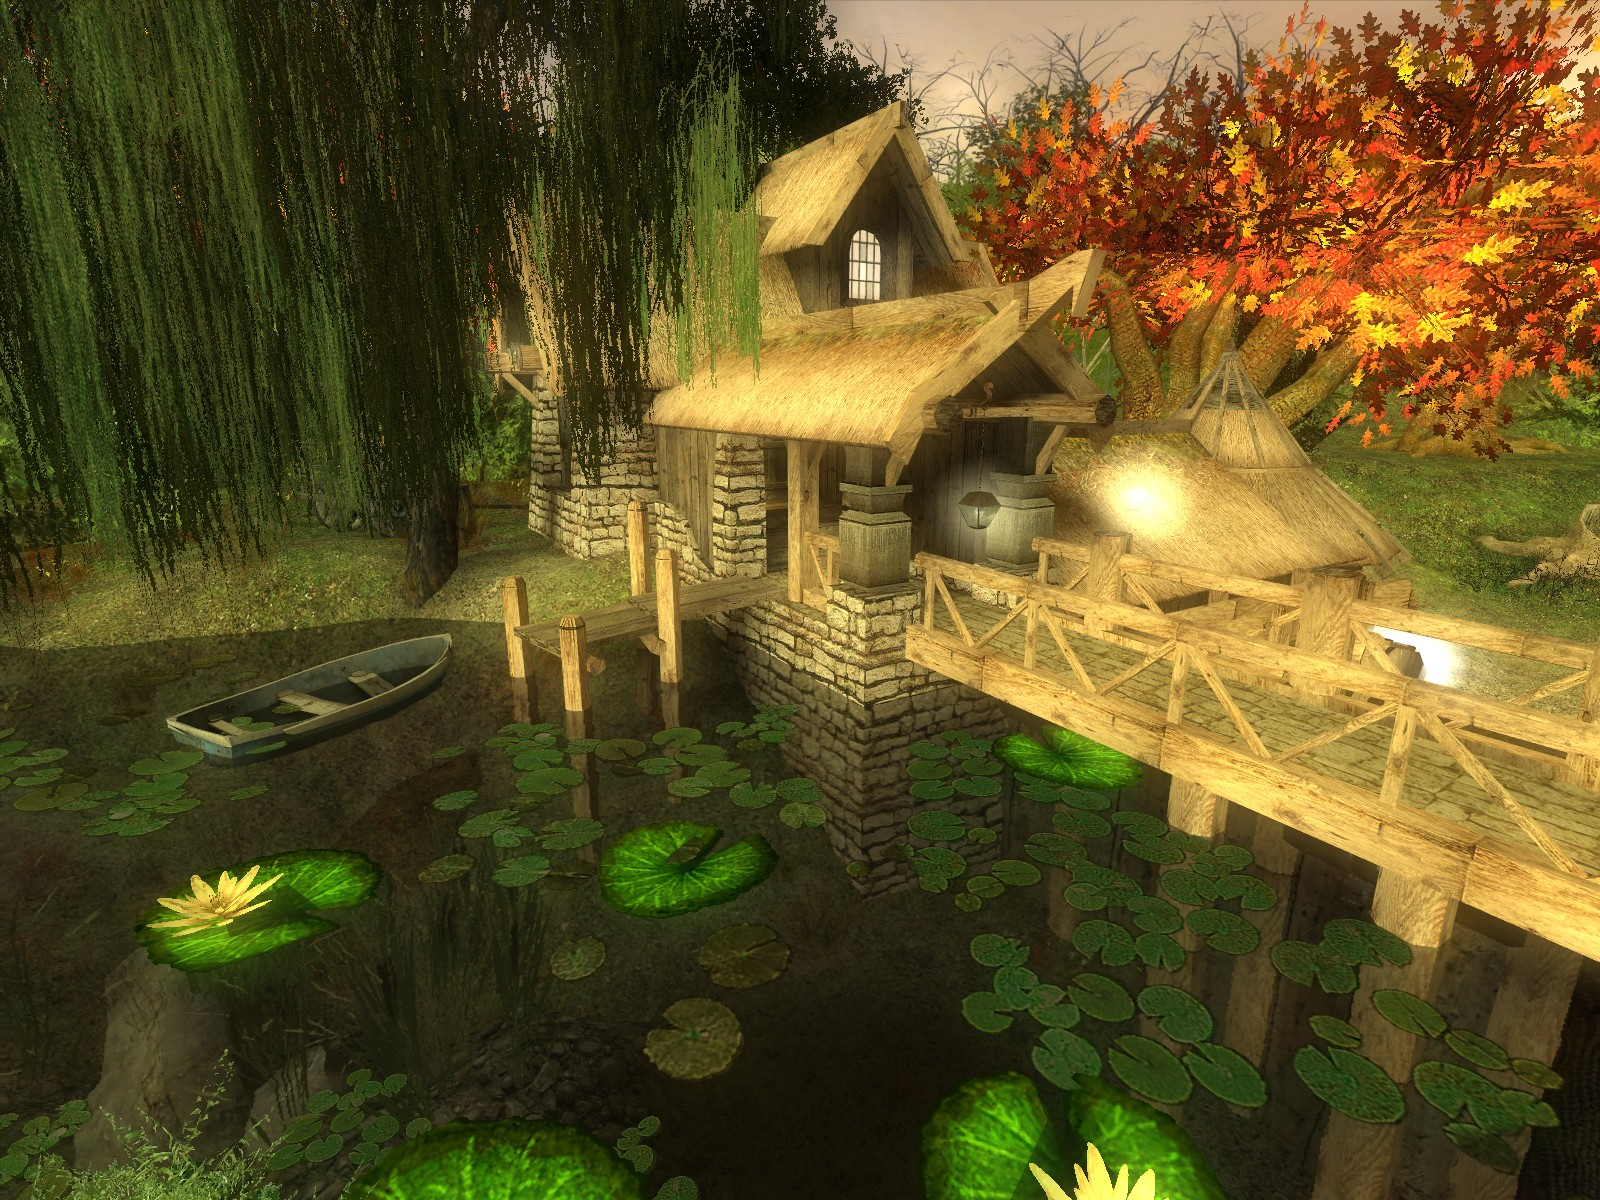 background_mill0001.jpg (714.37 Ko)